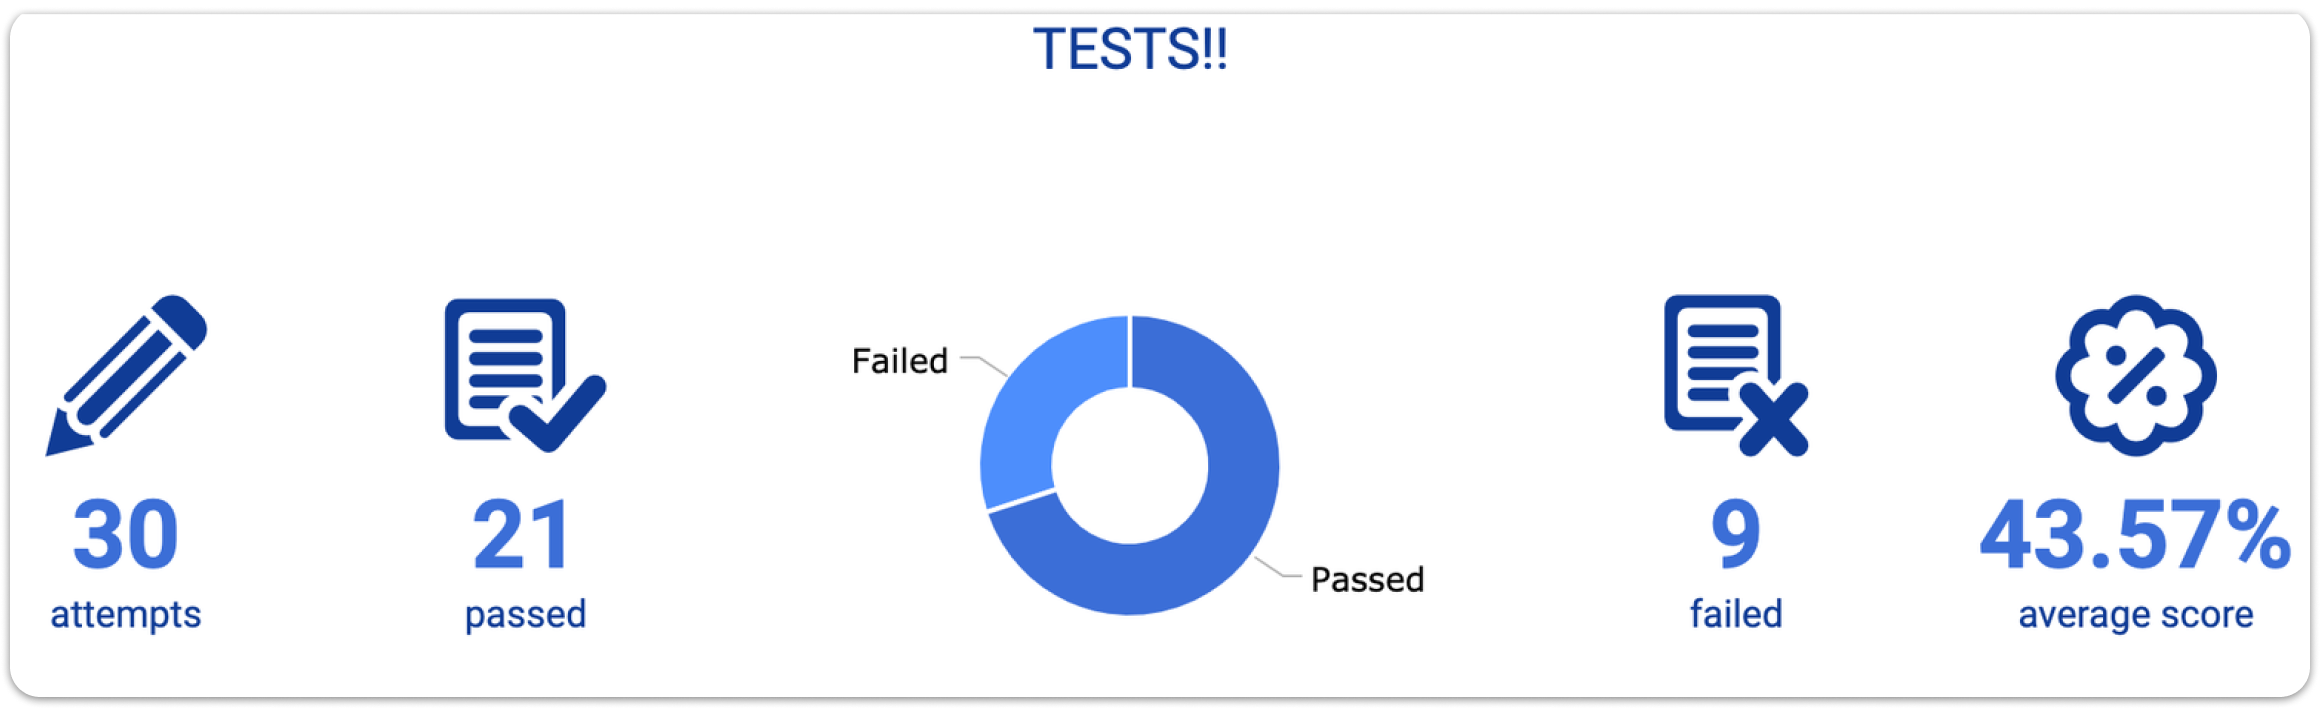 info_tests_rdy.png